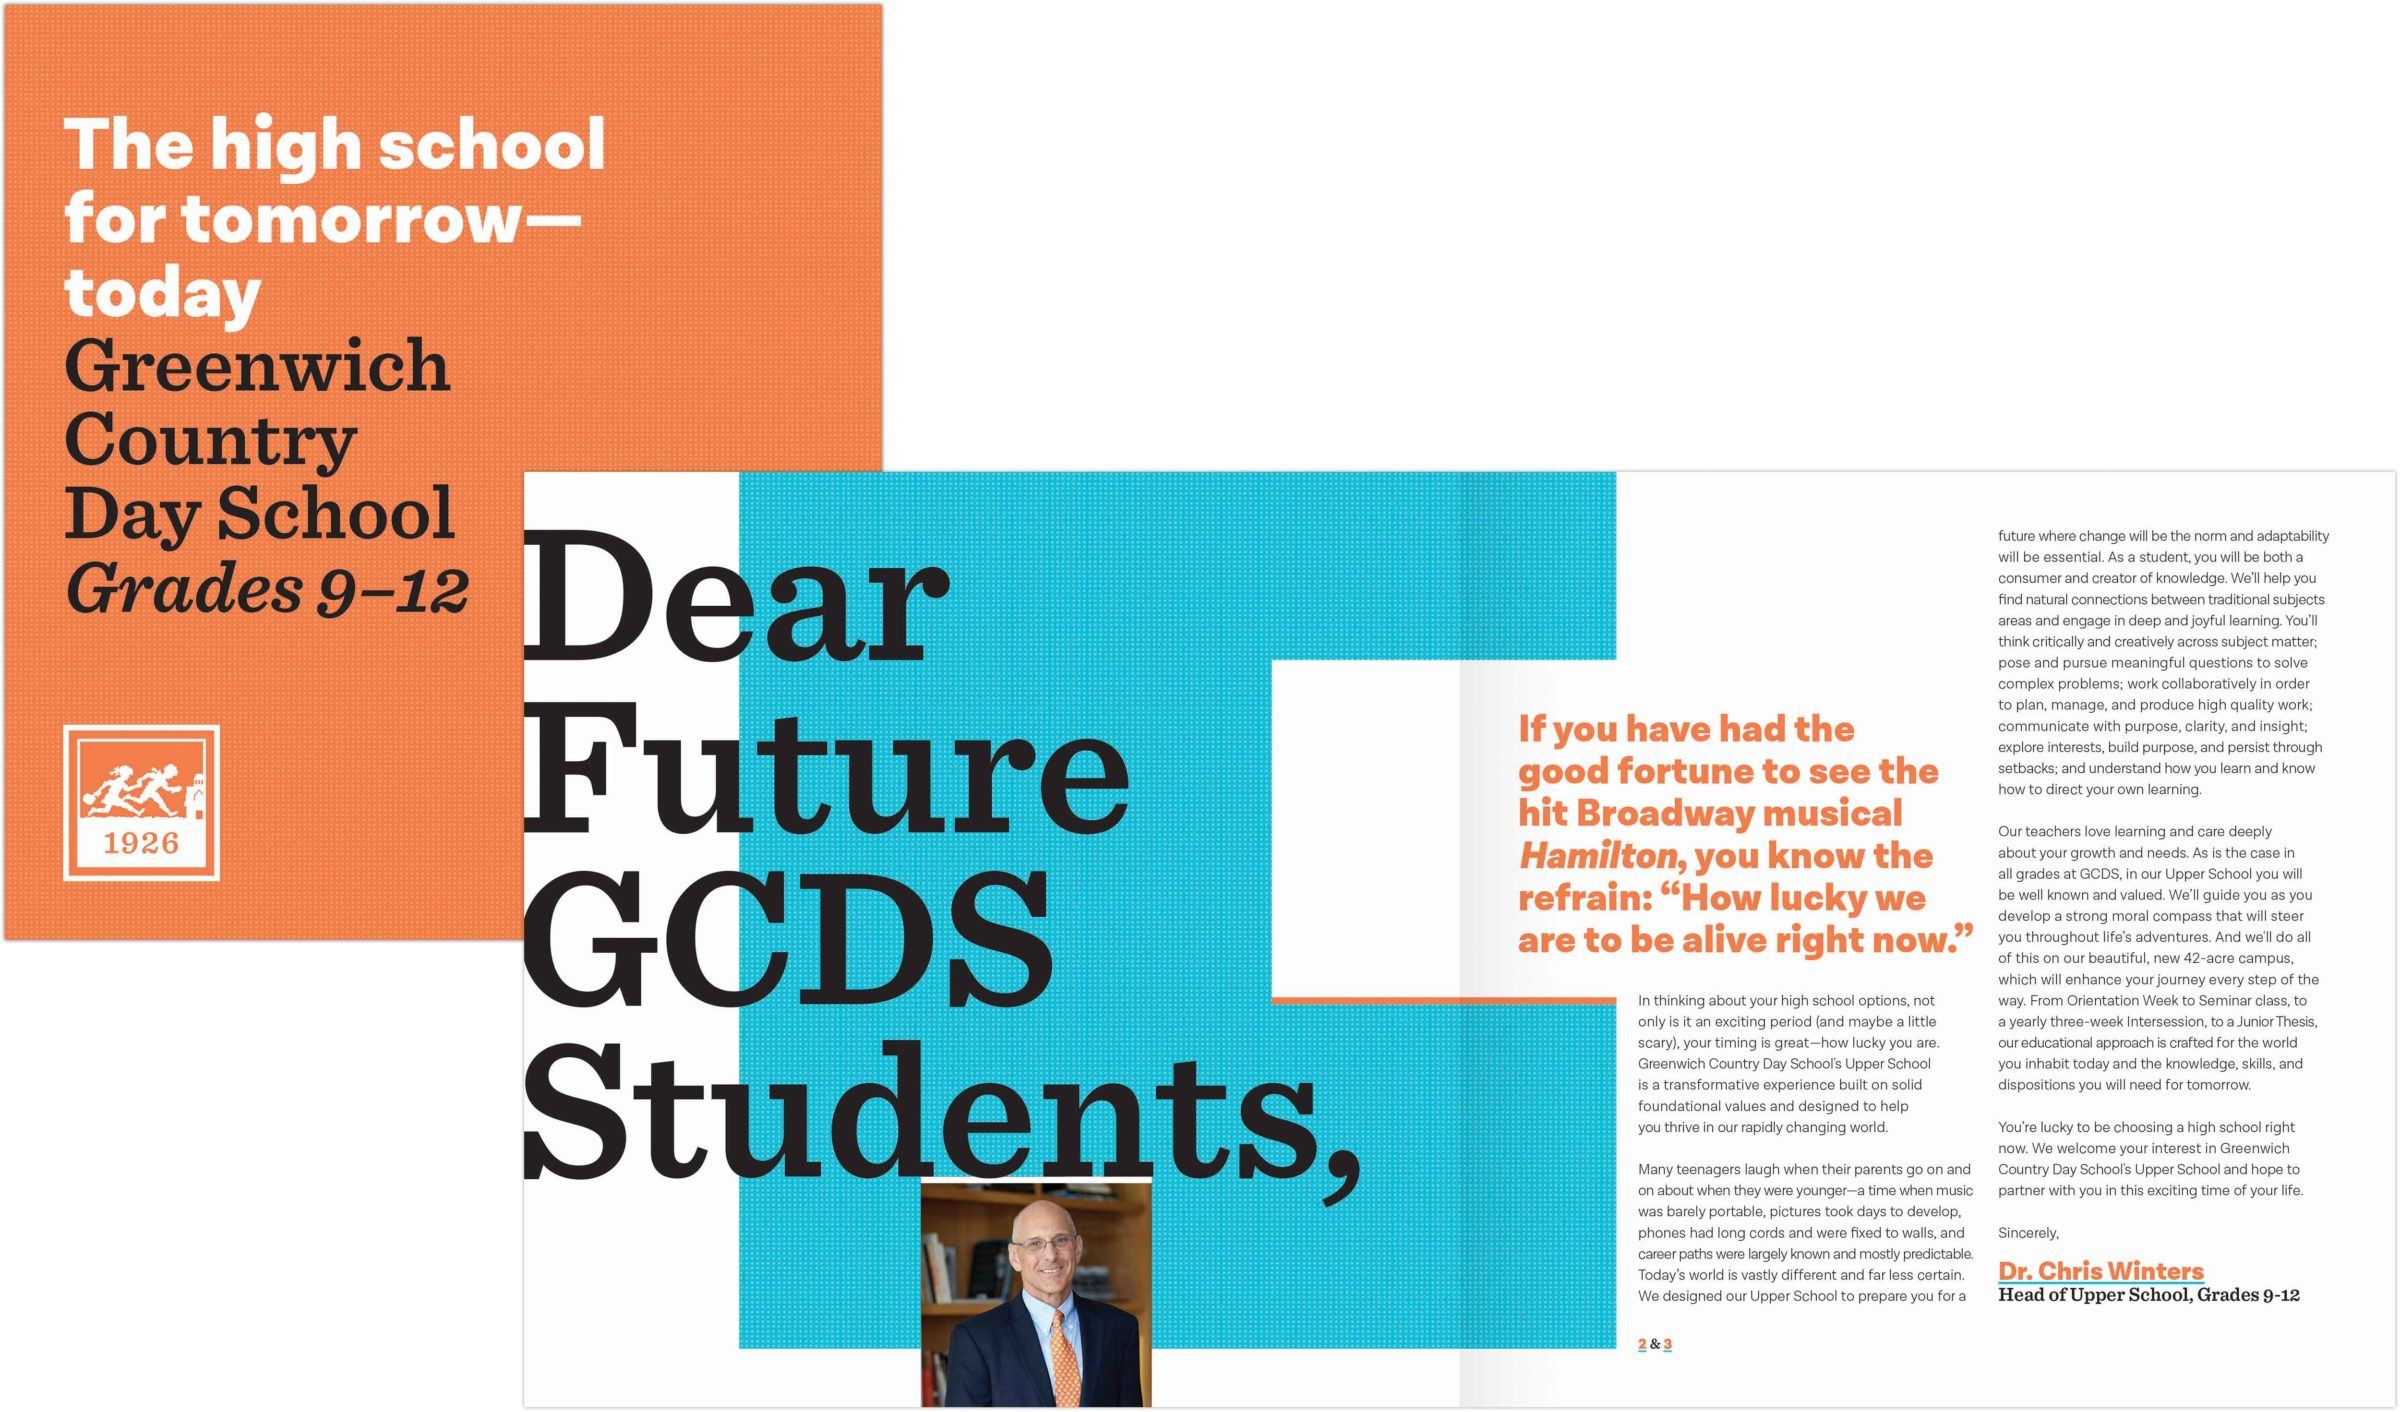 greenwich country day school 9-12 Focus Piece cover and spread